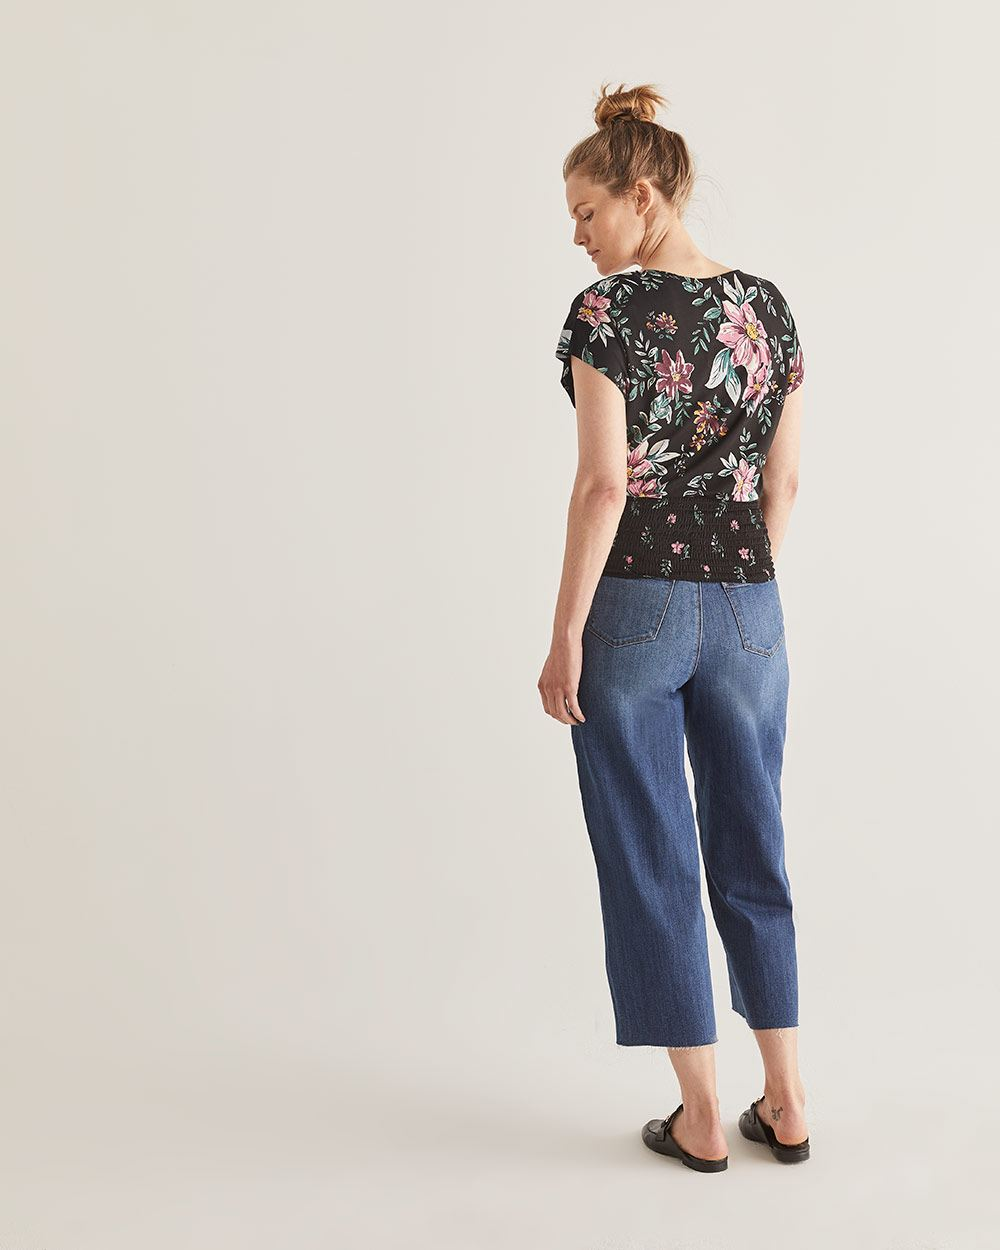 Buttoned-Down Printed Top with Smocking - Petite